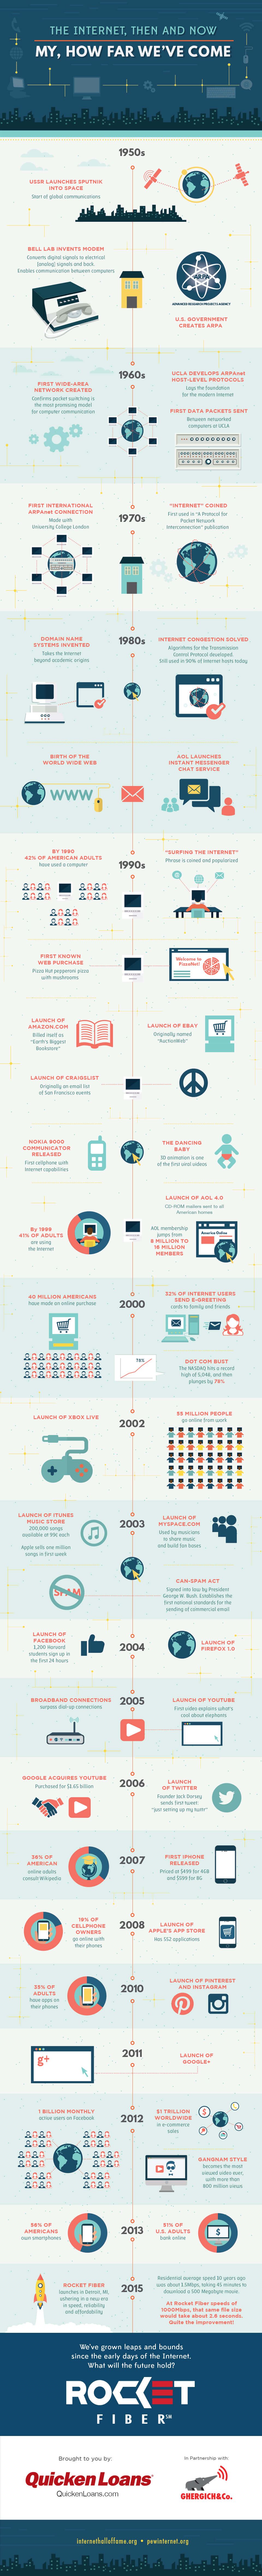 internet-then-and-now-infographic